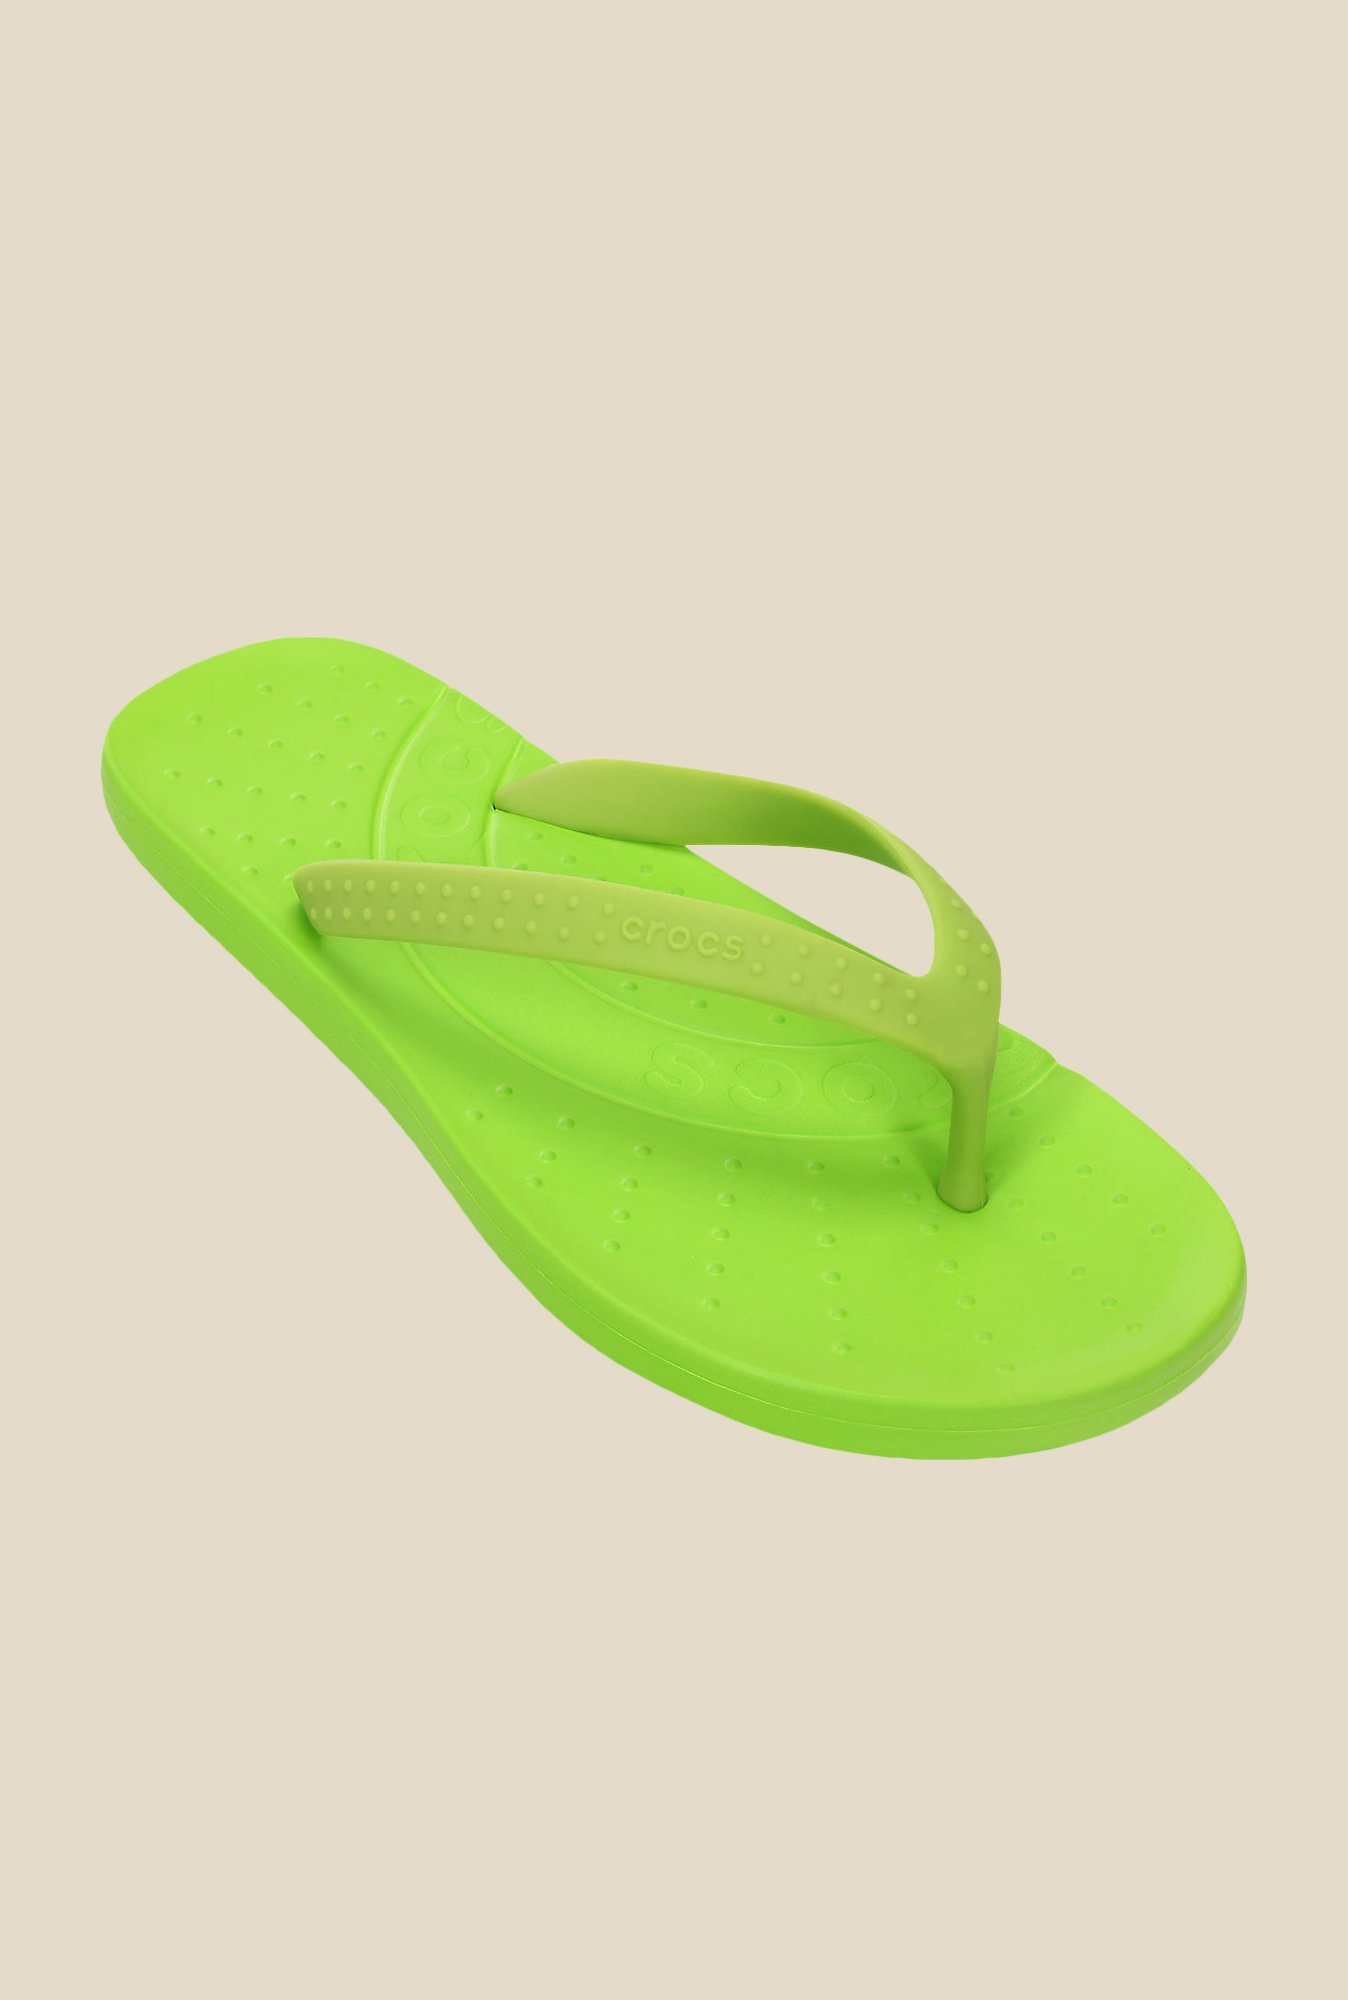 Crocs Chawaii Volt Green Flip Flops